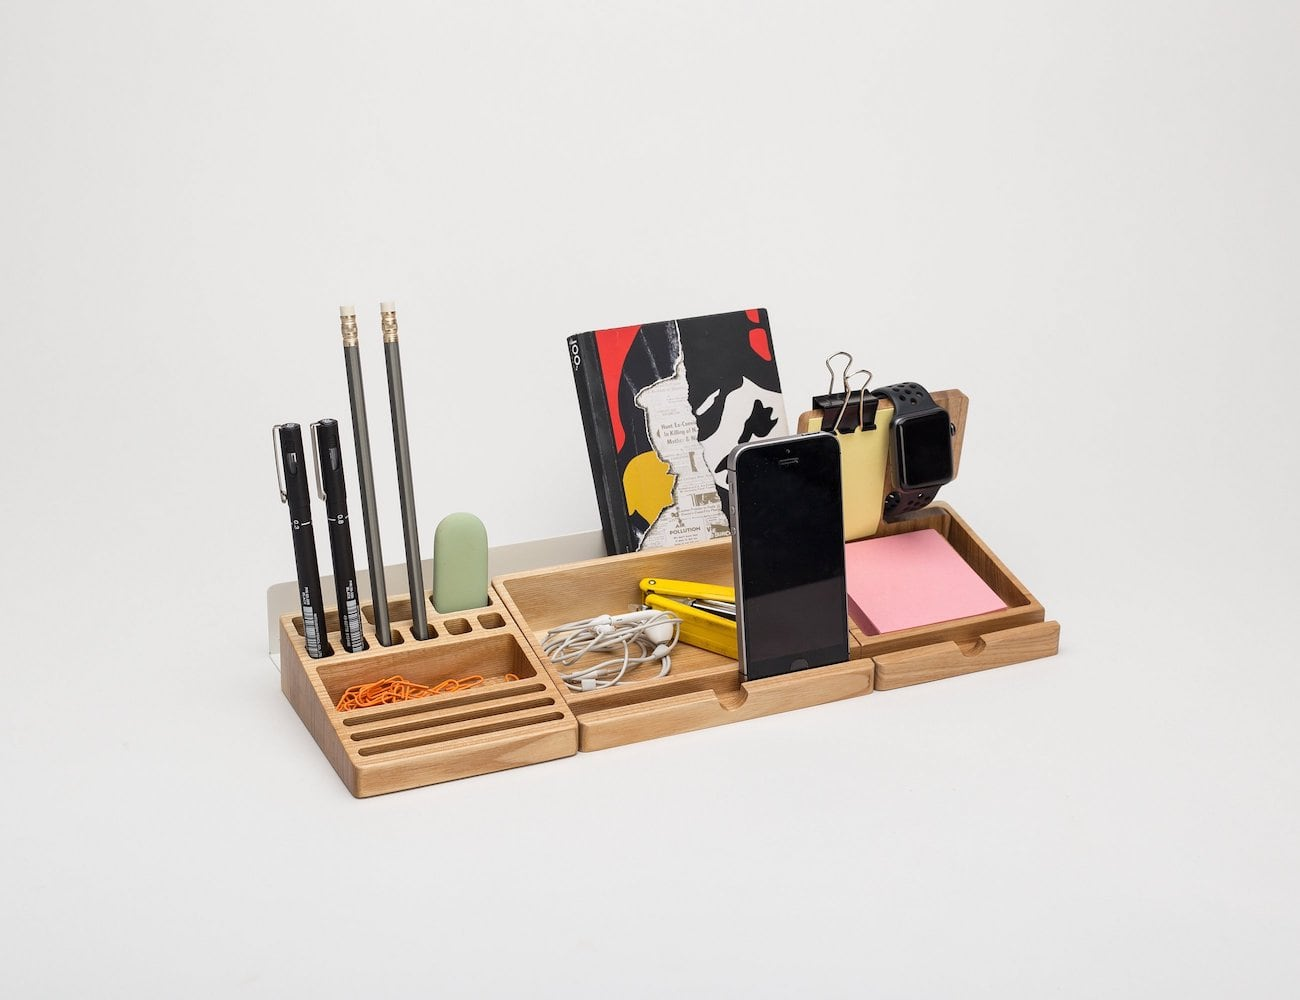 Desk Organizer Wood Wooden Desk Organizer Set Has Three Wooden Blocks For Easy